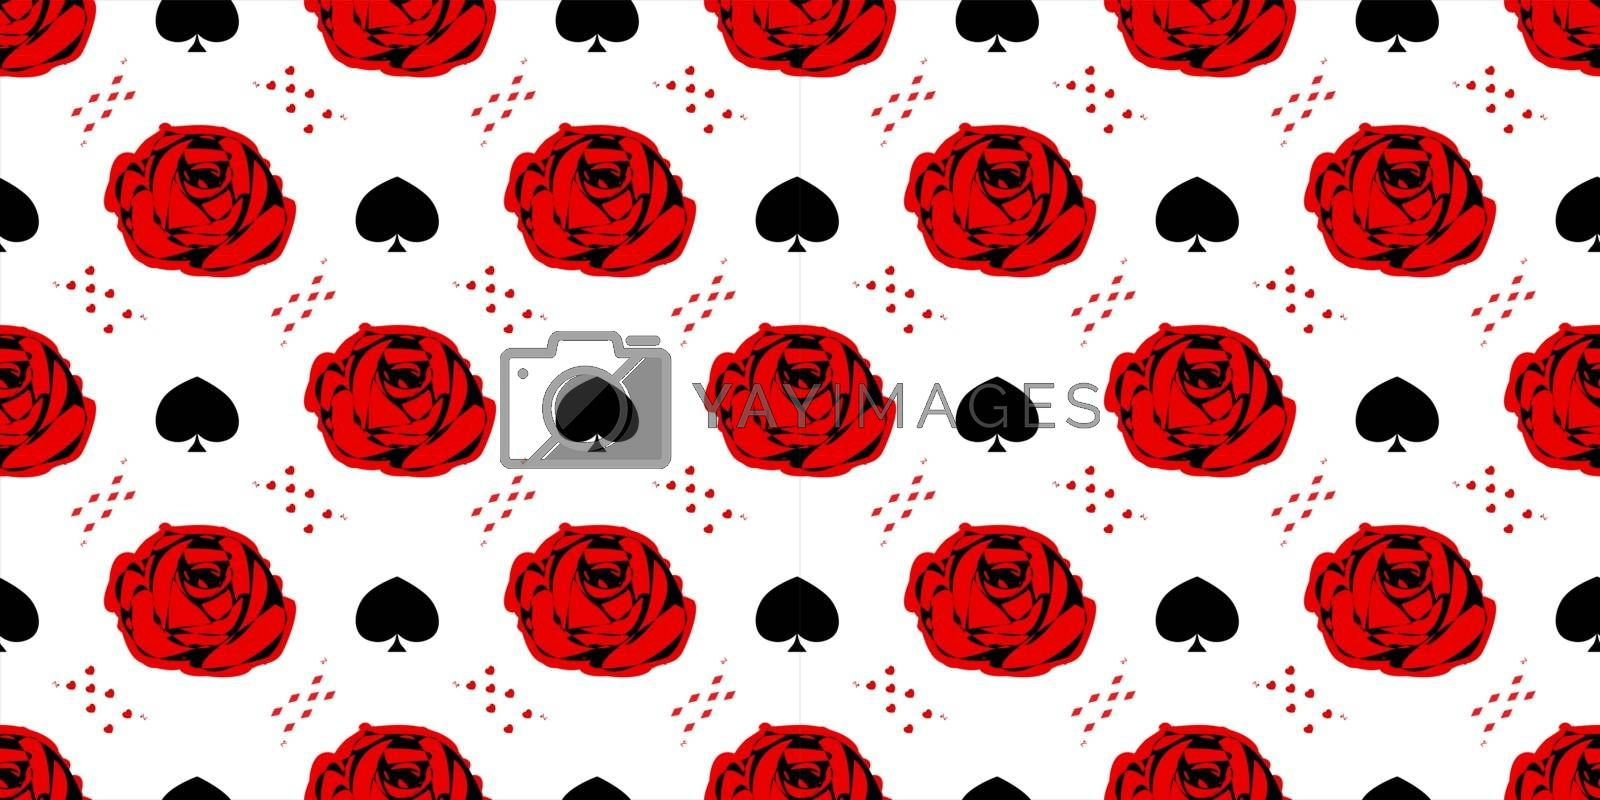 Red Rose. Playing cards. Wonderland. Seamless pattern. Children's fairy tales Alice